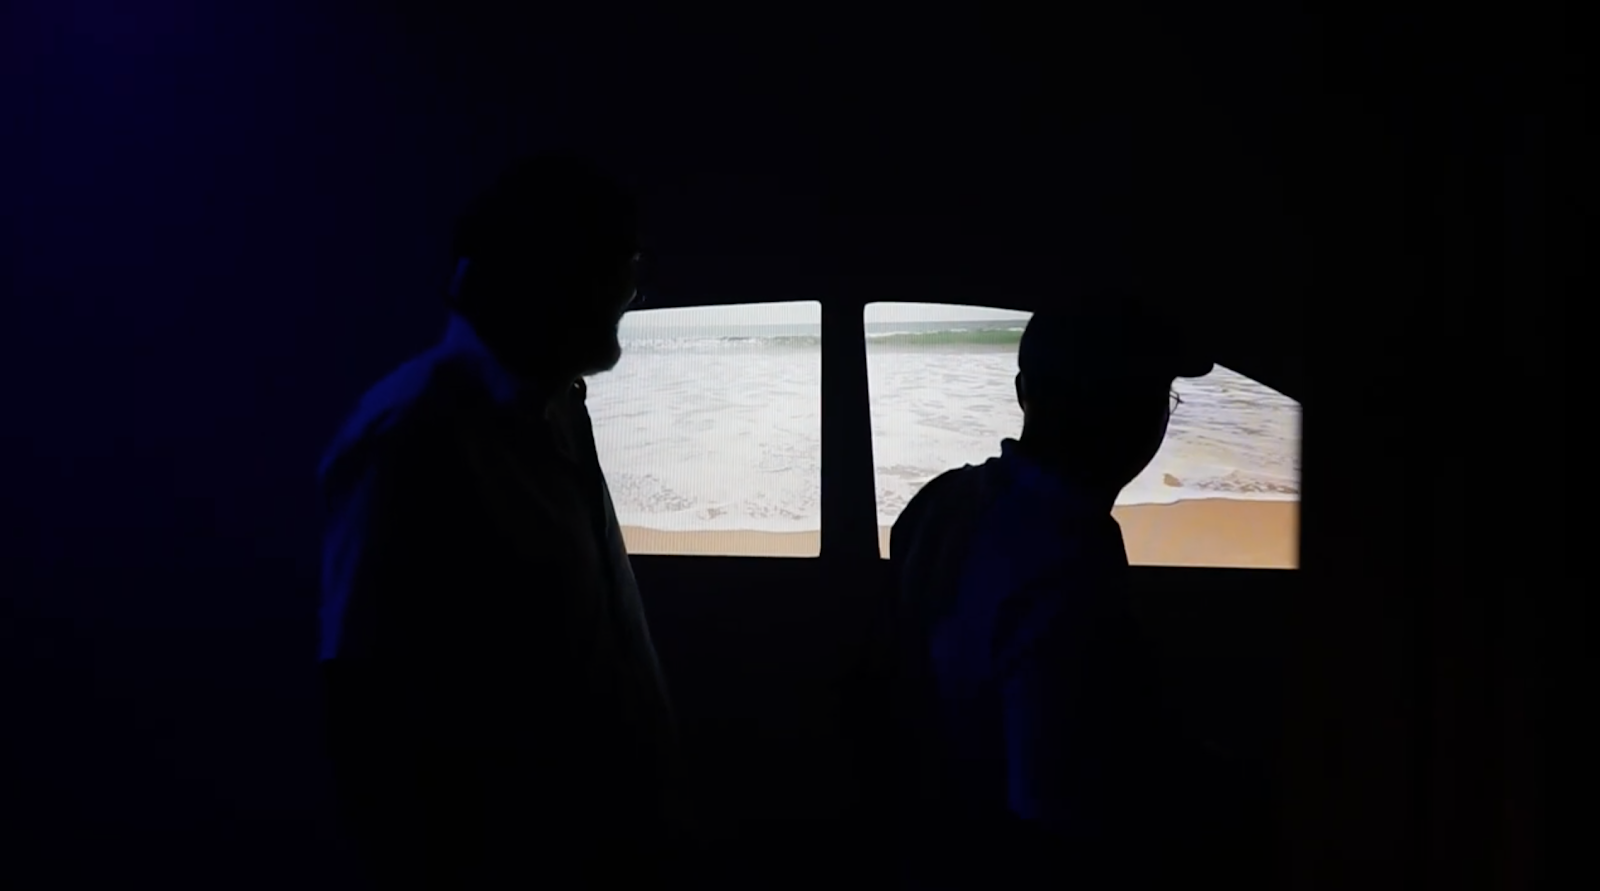 Two men in the dark experiencing an Interactive Digital Signage experience